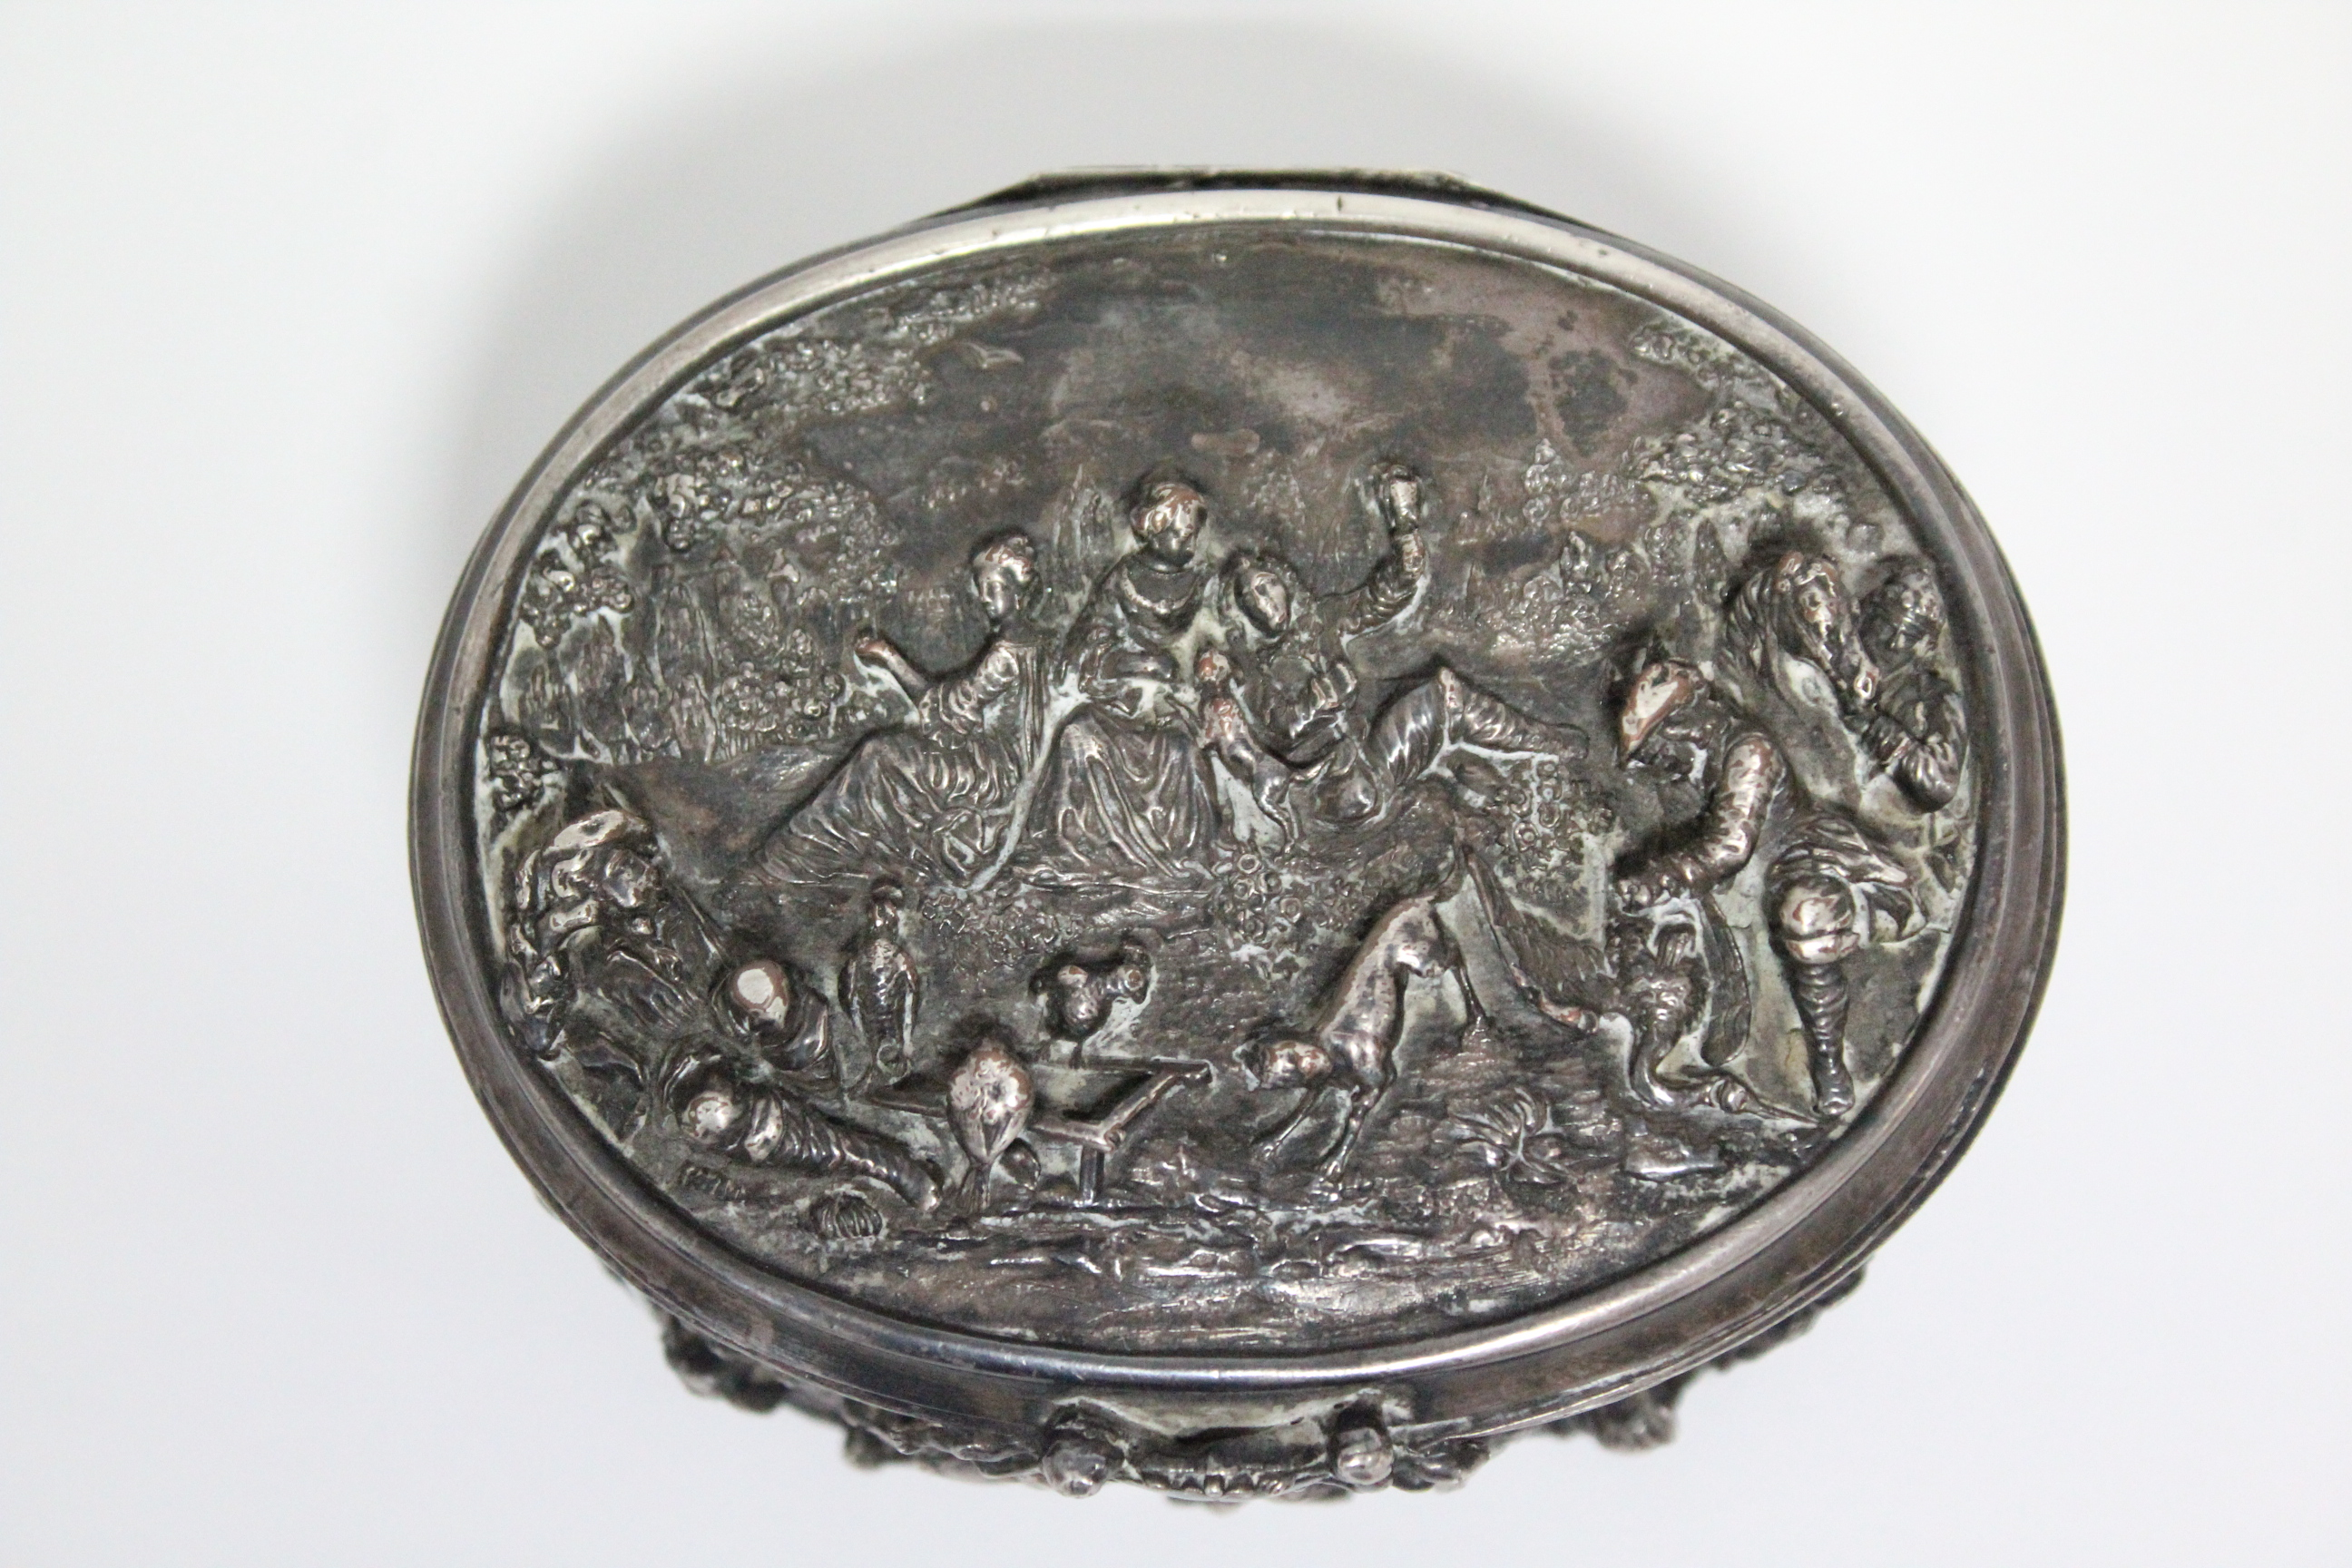 A continental white metal oval box, decorated in relief with scenes of huntsmen, figures & animals - Image 6 of 9